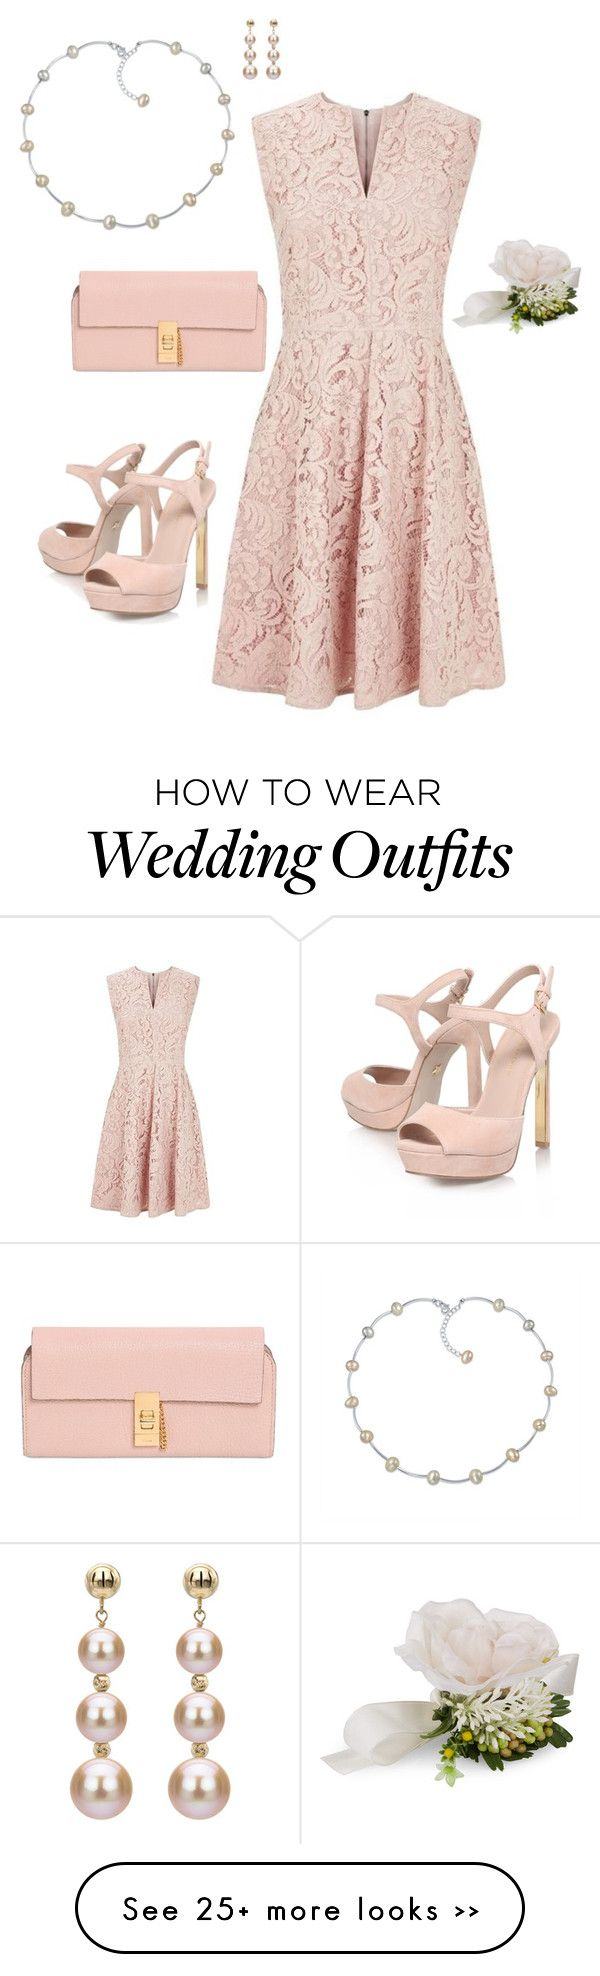 17 Best ideas about Wedding Guest Outfits on Pinterest  Wedding outfits Wedding guest outfit